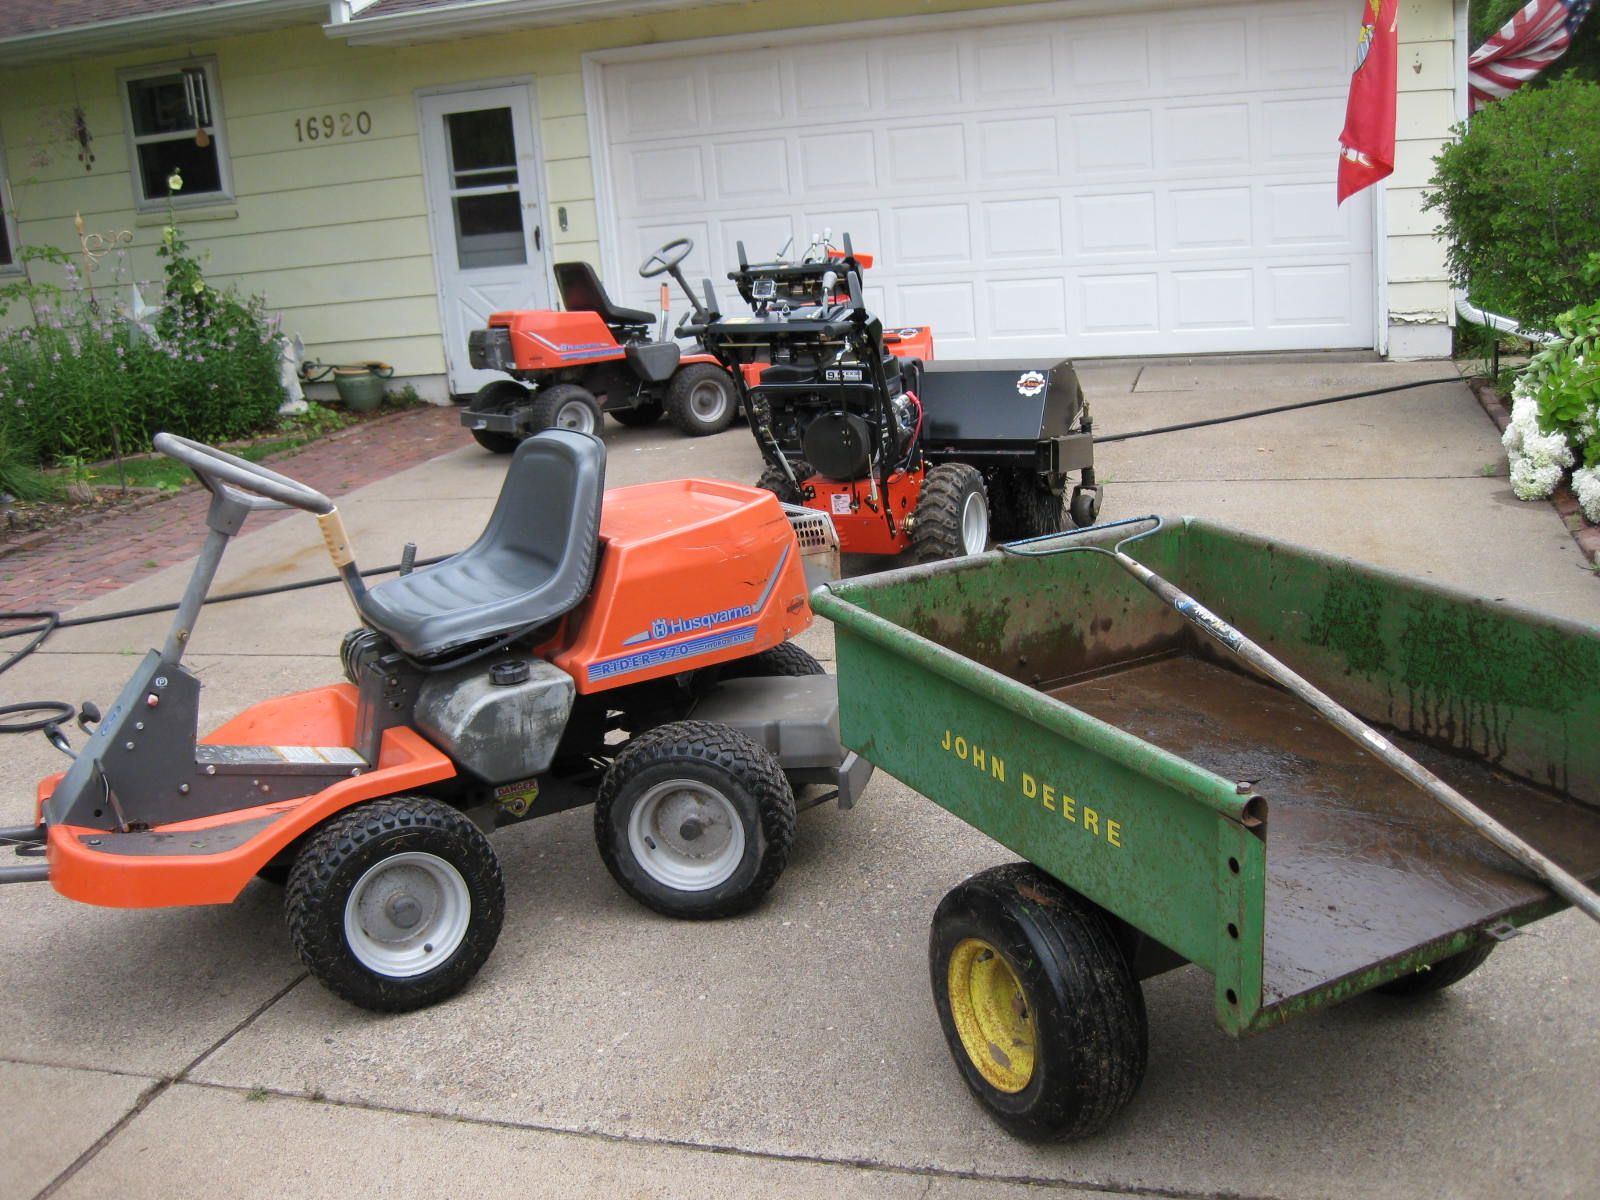 The yard tractor Husqvarna 970 and original JD 80 cart Mowers